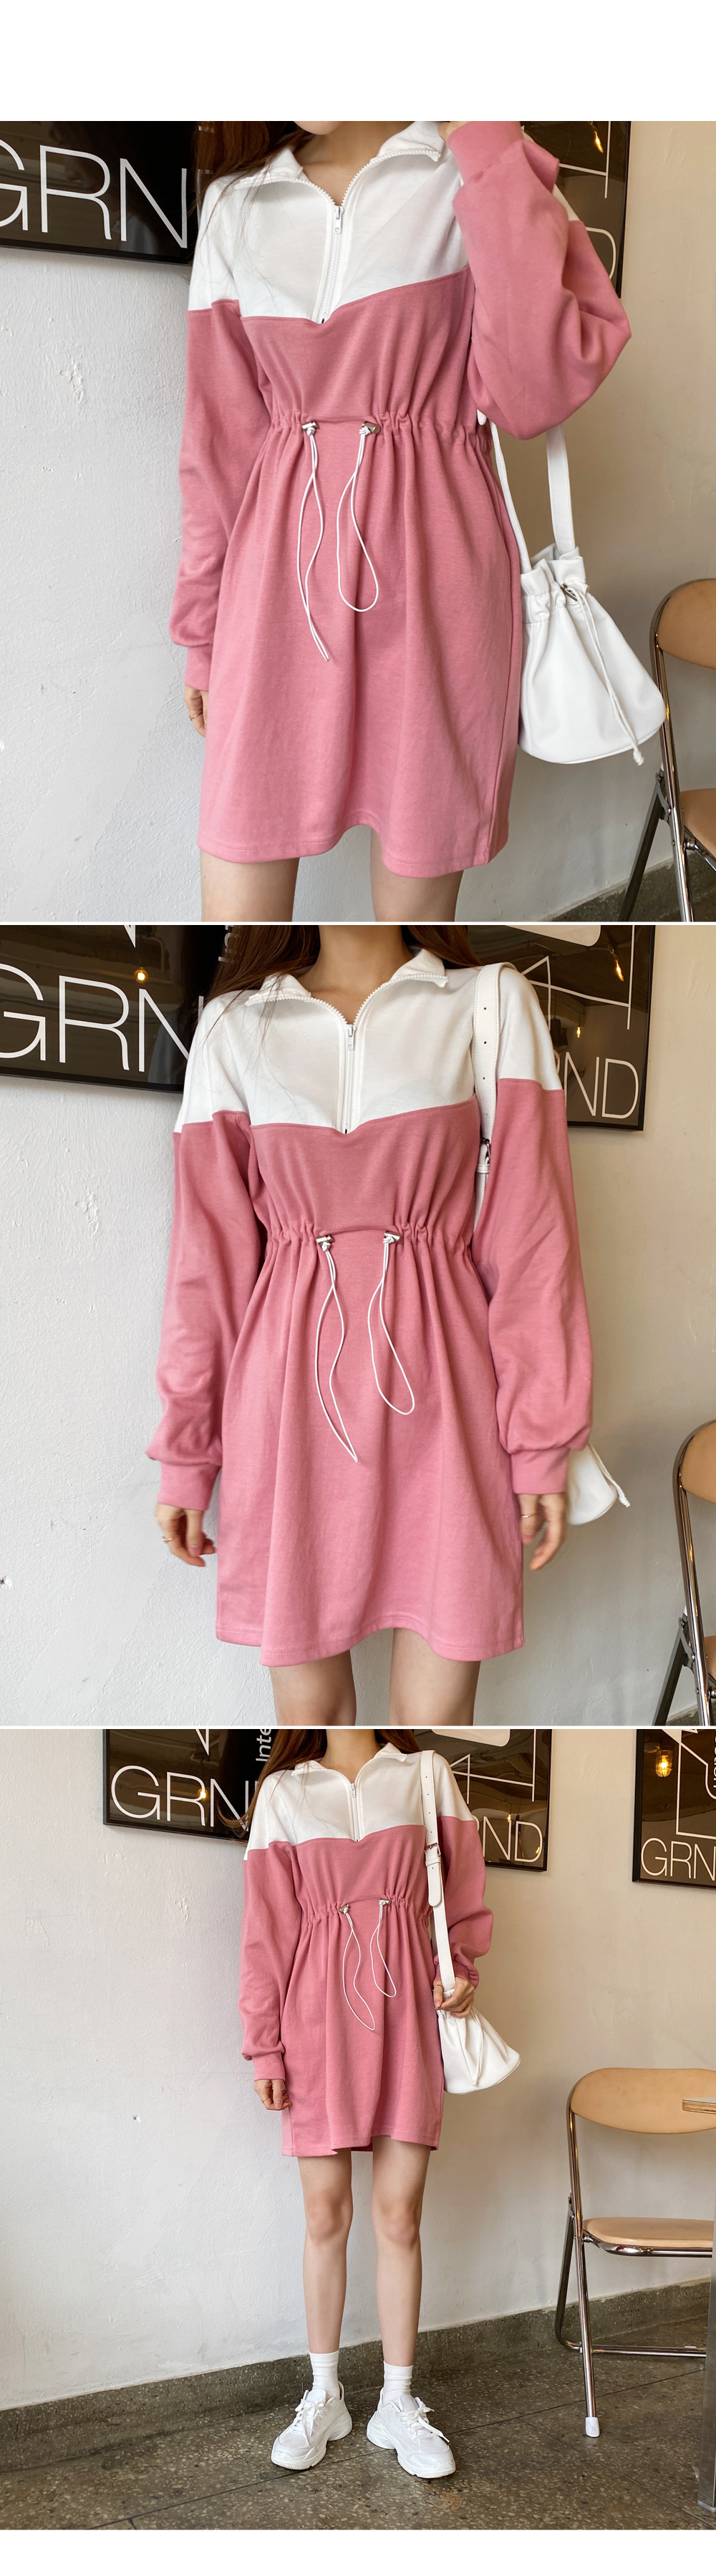 In front of the house Color Zip up dress